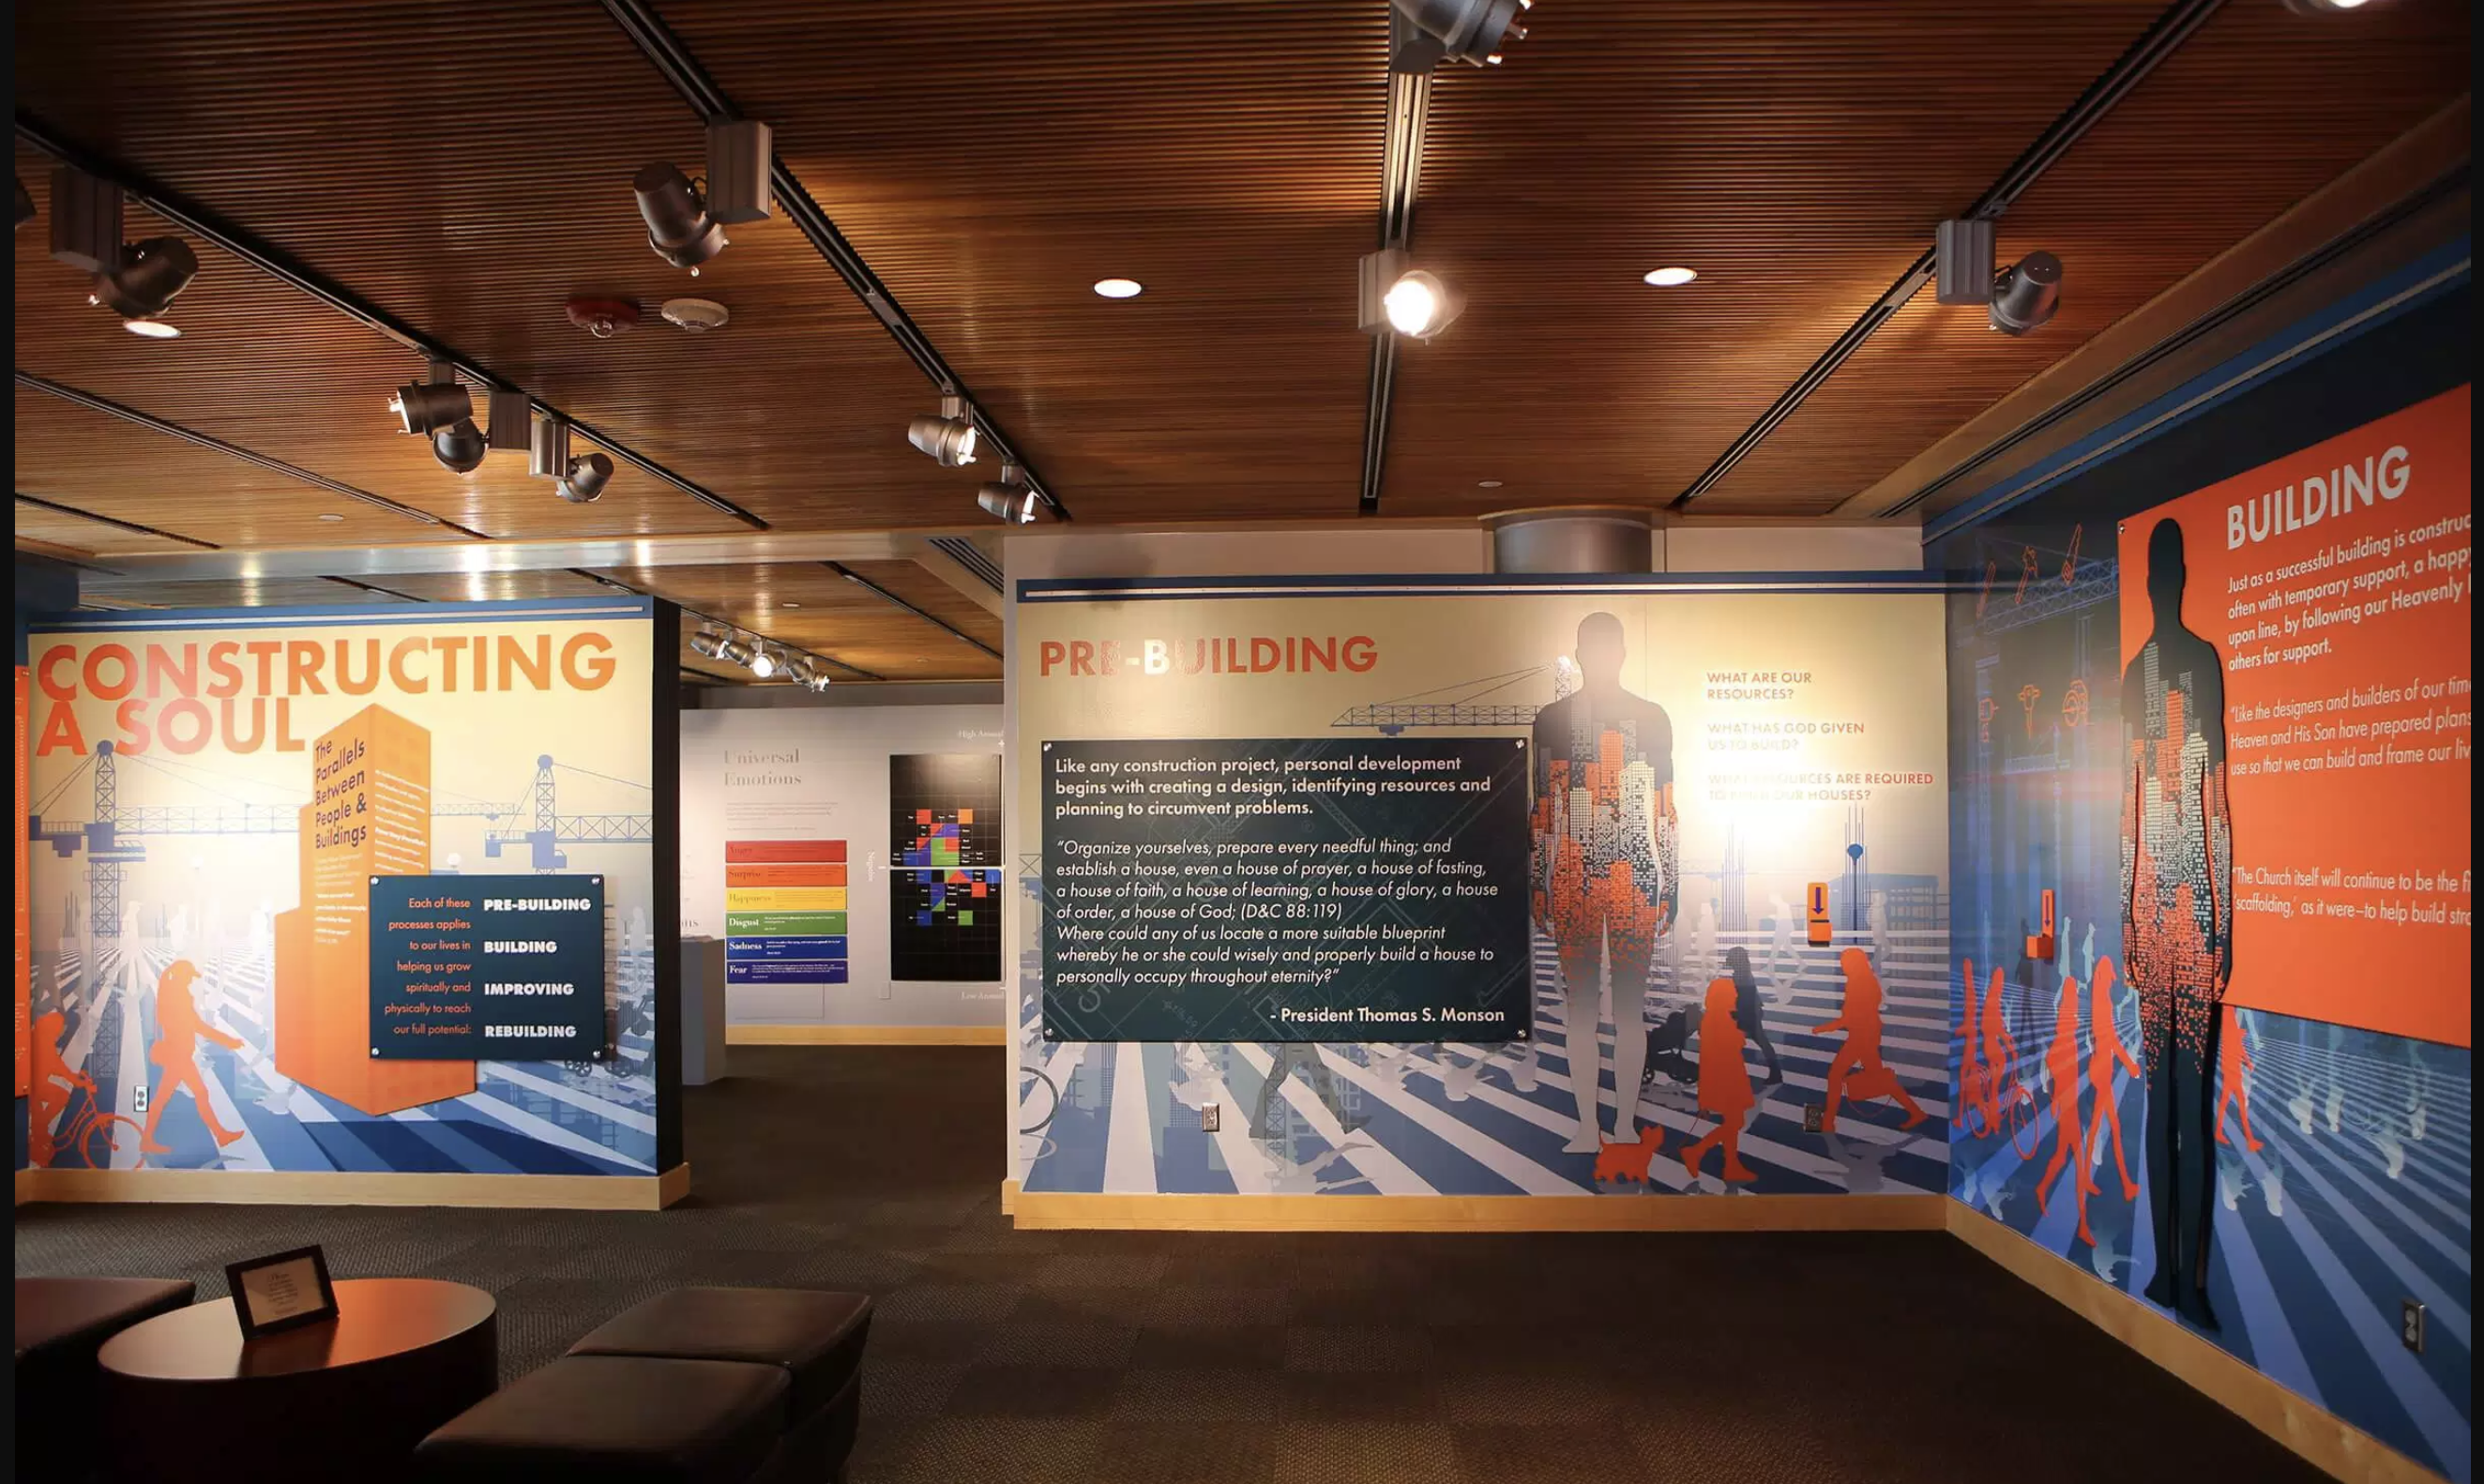 """The recently-opened """"Constructing a Soul"""" exhibition at Brigham Young University explores the many parallels between constructing and maintaining a building -- and """"rebuilding"""" an improving one's own life."""